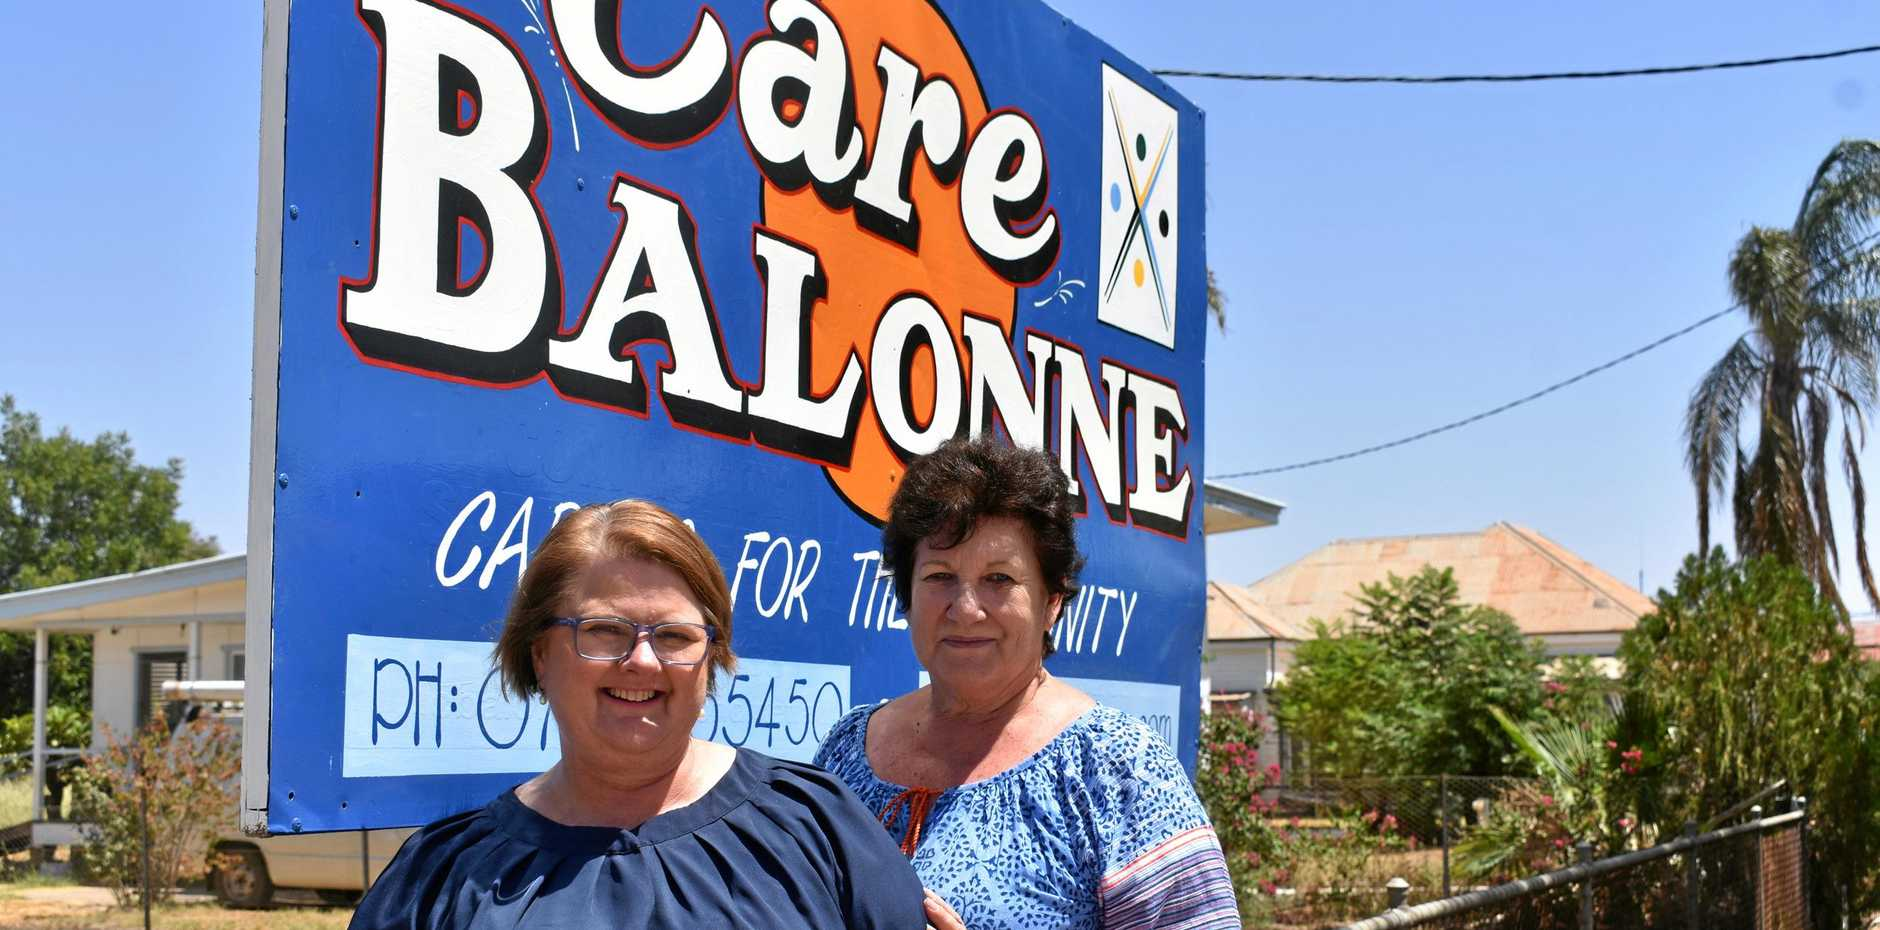 Cathy Claxton and Robyn Fuhrmeister from Care Balonne will work with Balonne Shire Council to welcome migrant families to the shire.